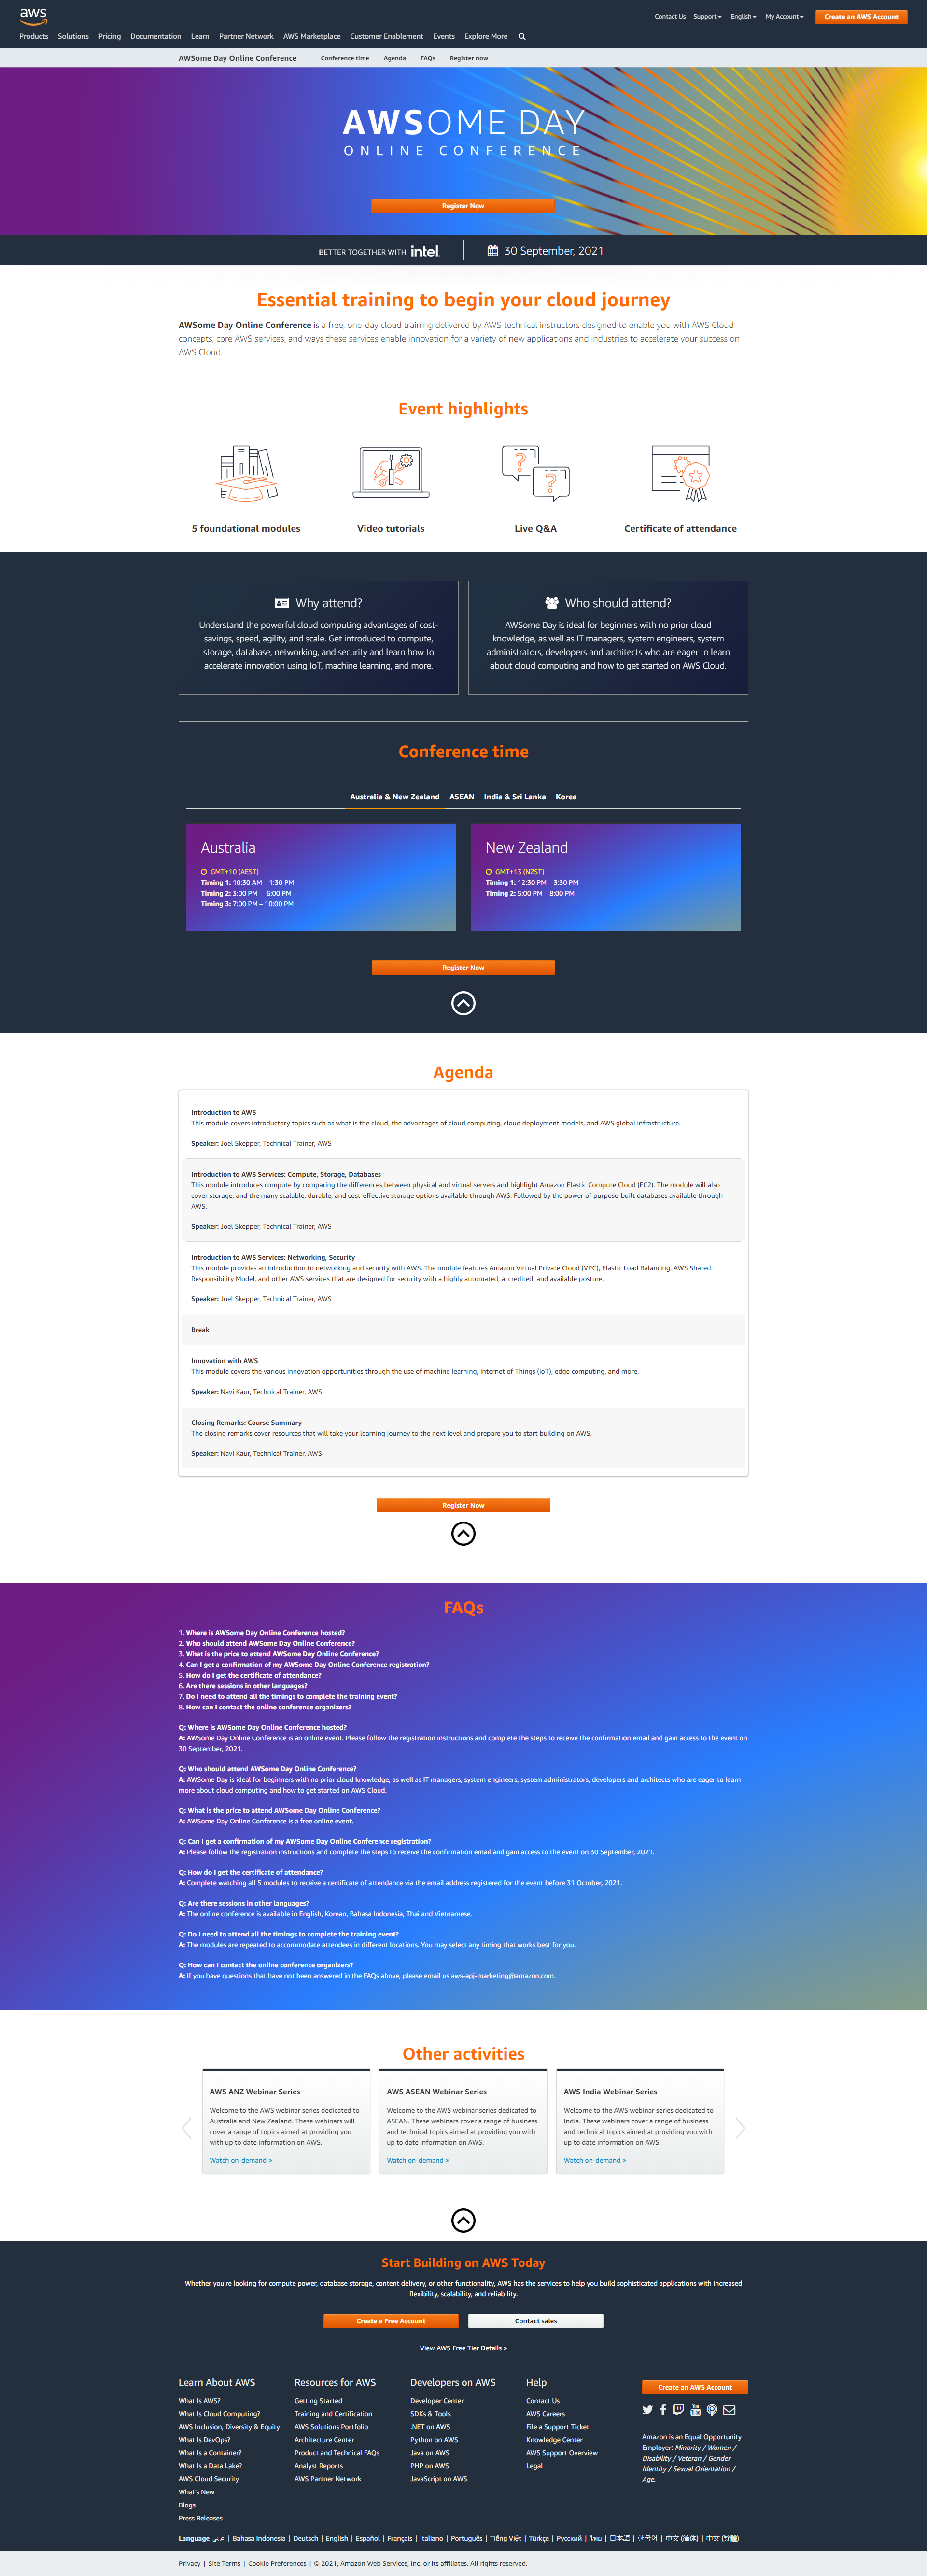 AWS Web page example